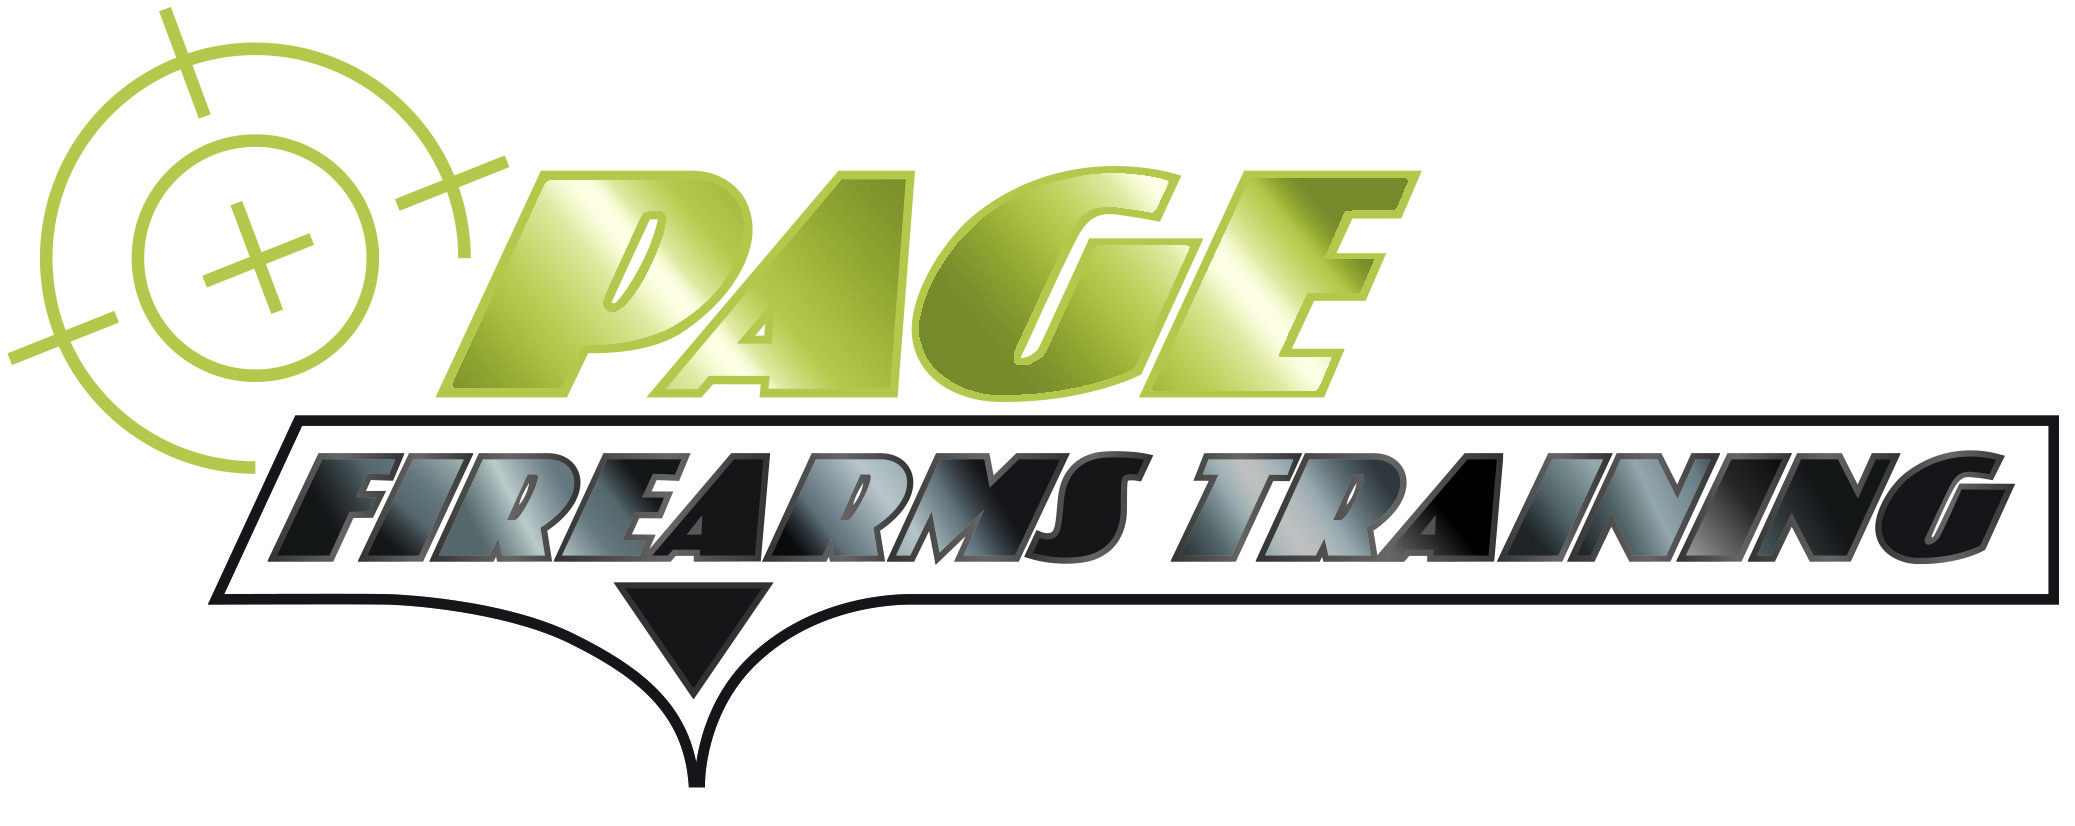 Page Firearms & Training is Offering Military Discounts